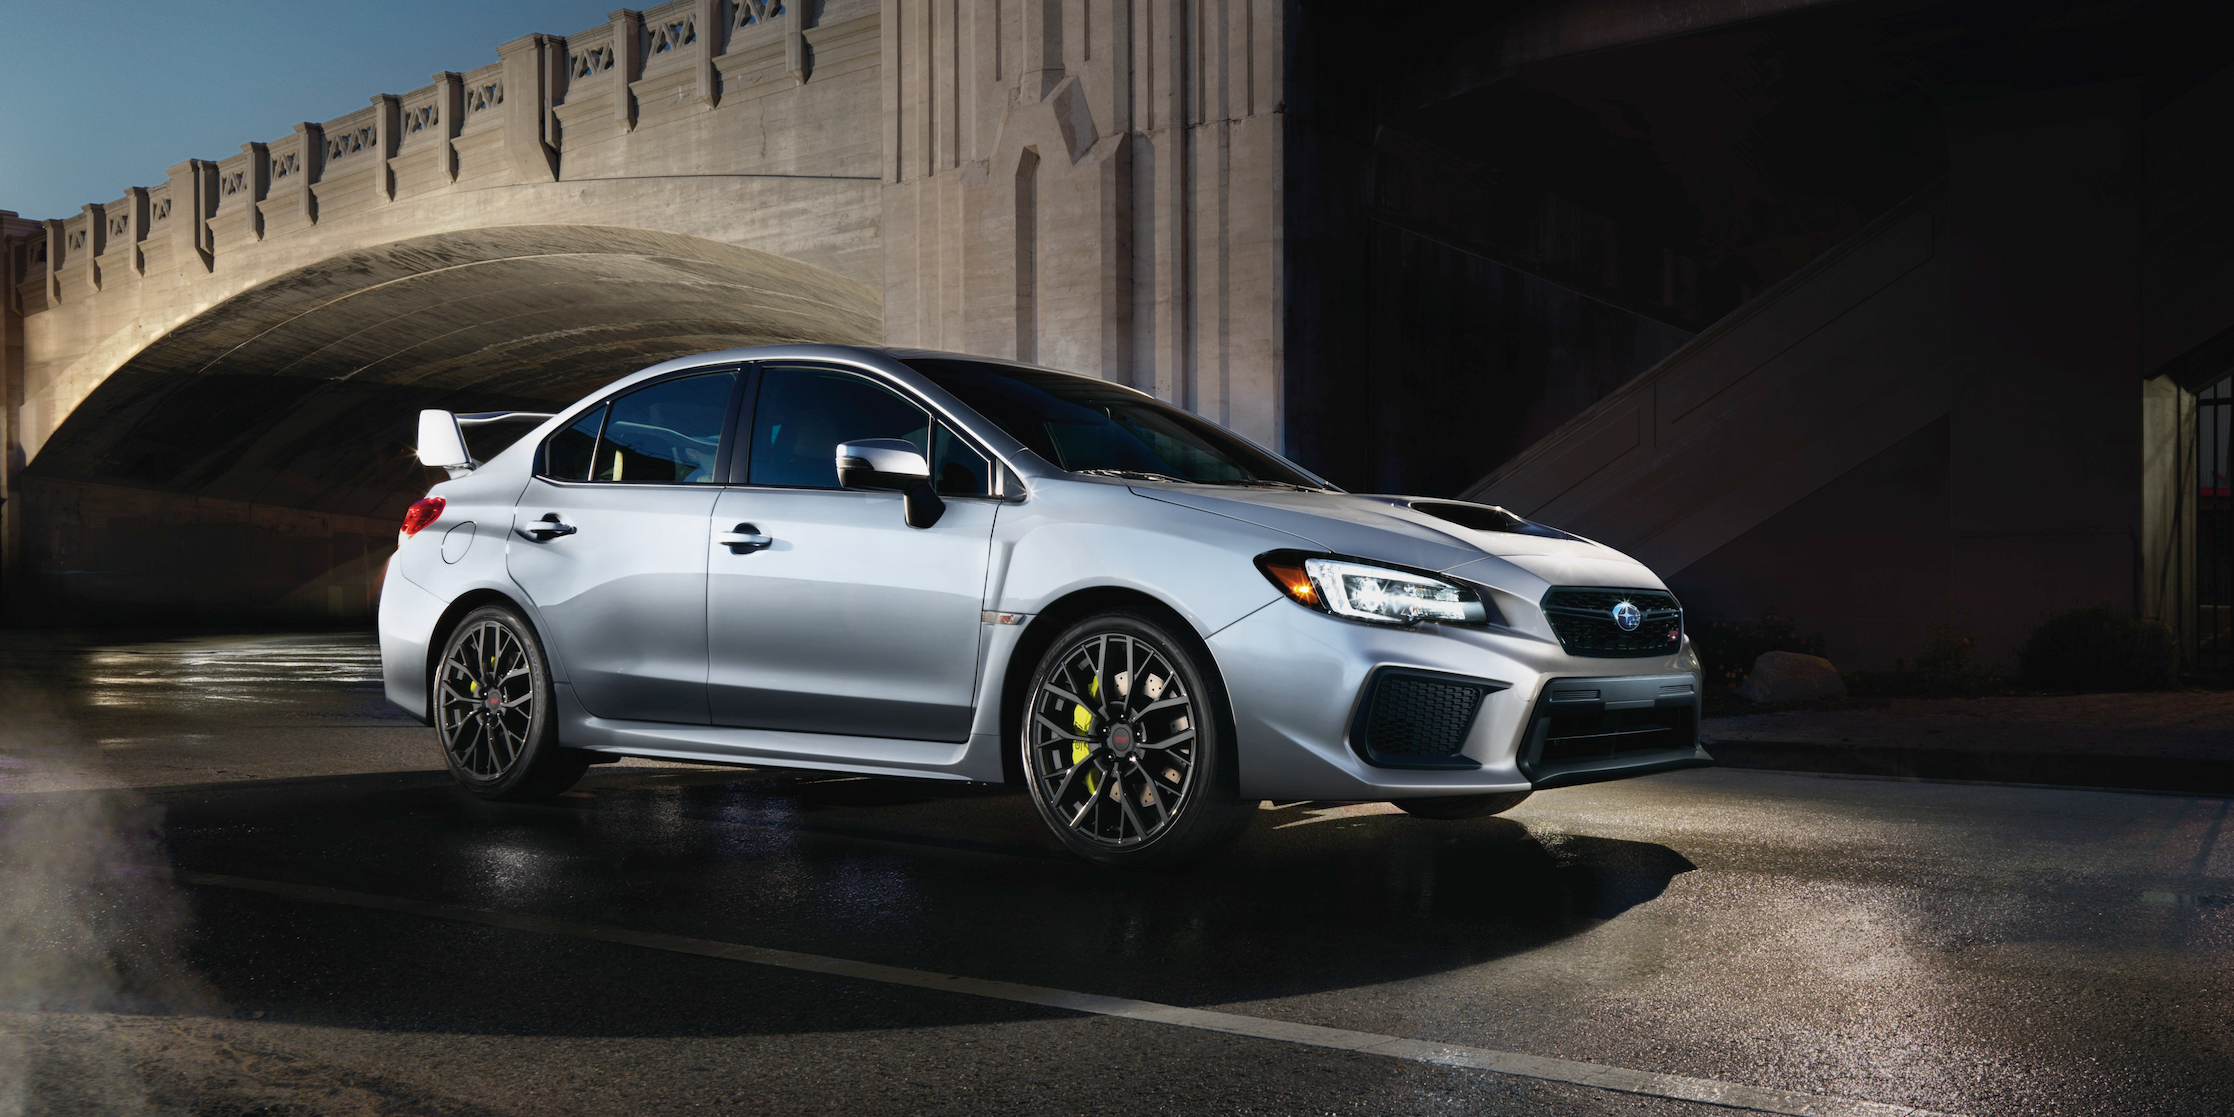 Subaru Wrx Sti Type Ra >> Subaru WRX STI Gets More Horsepower For the First Time in a Decade